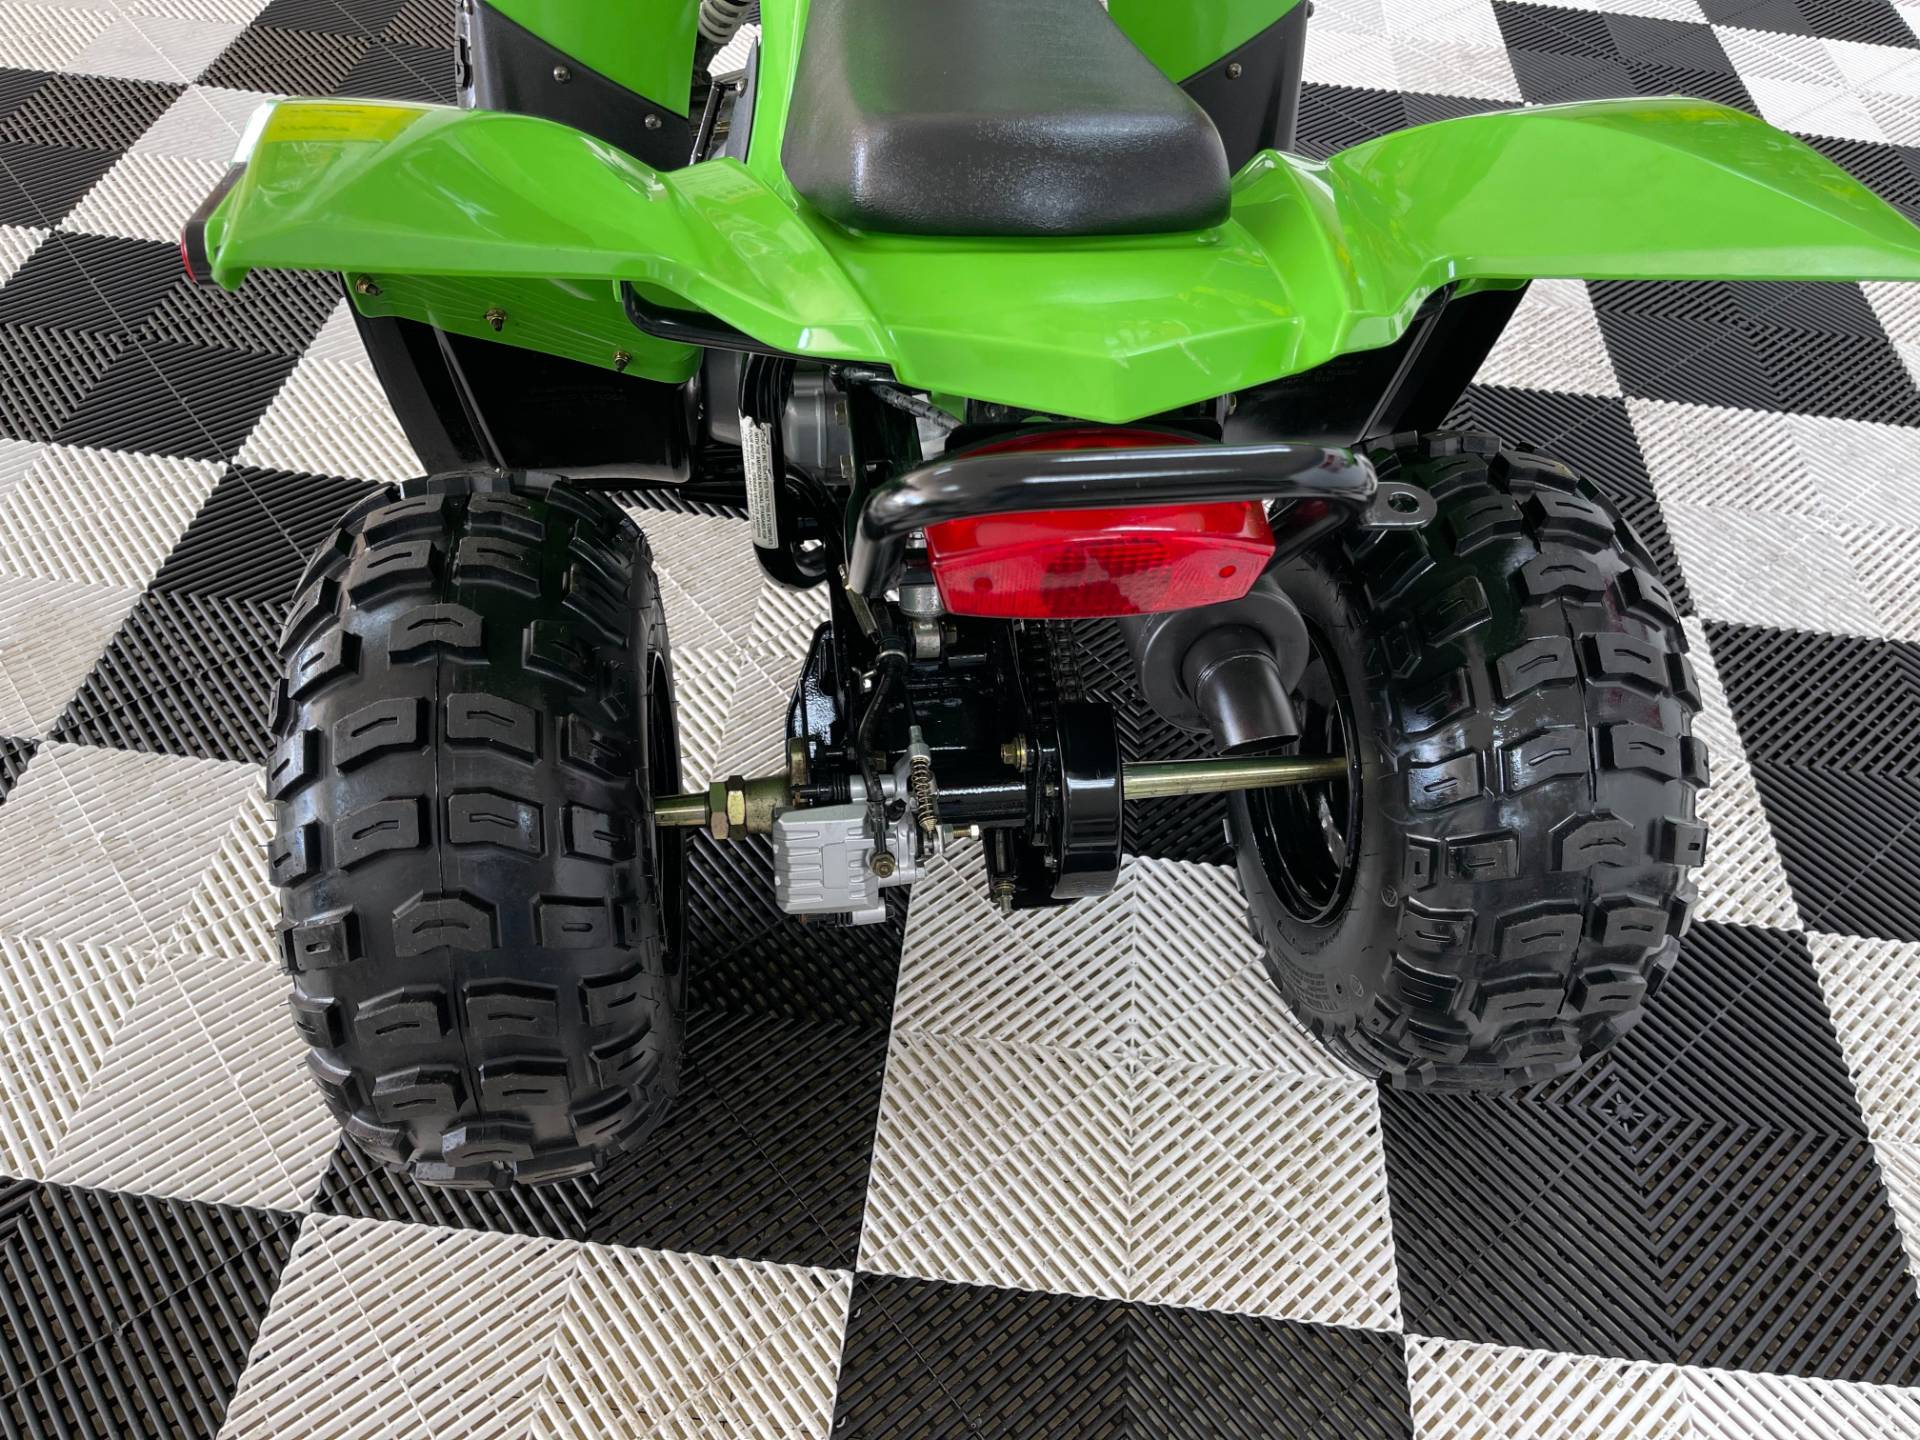 2017 Arctic Cat DVX 90 in Herkimer, New York - Photo 12